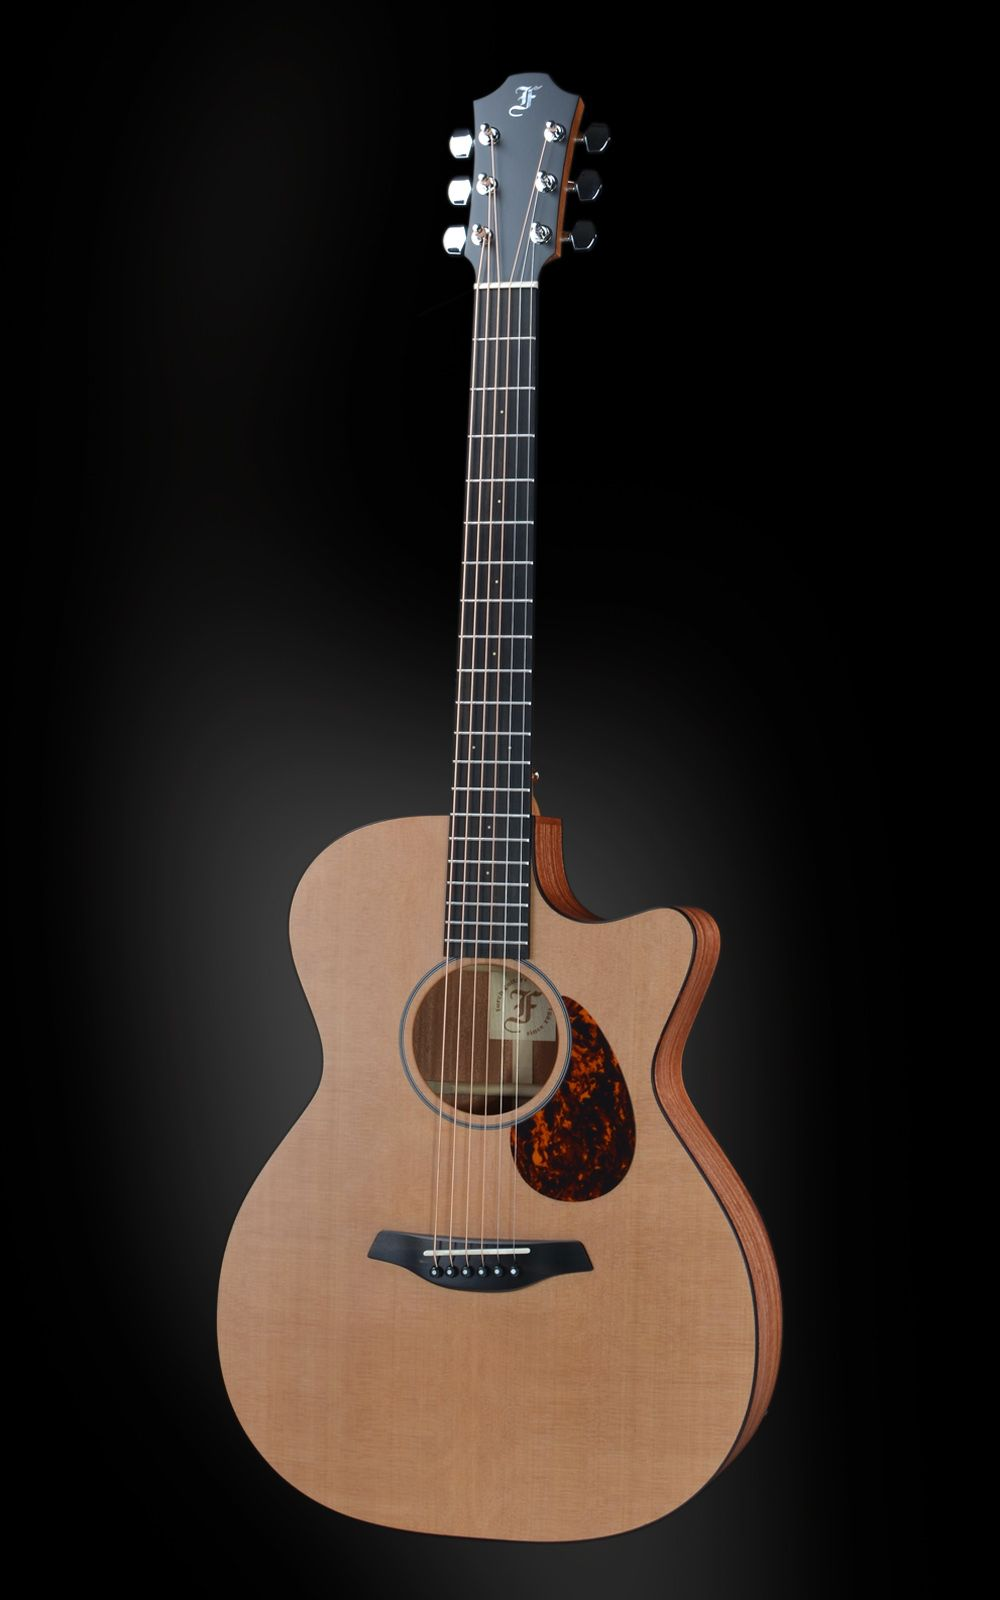 The Czech exhibitor Furch Guitars can be found at hall 3.1 D 90